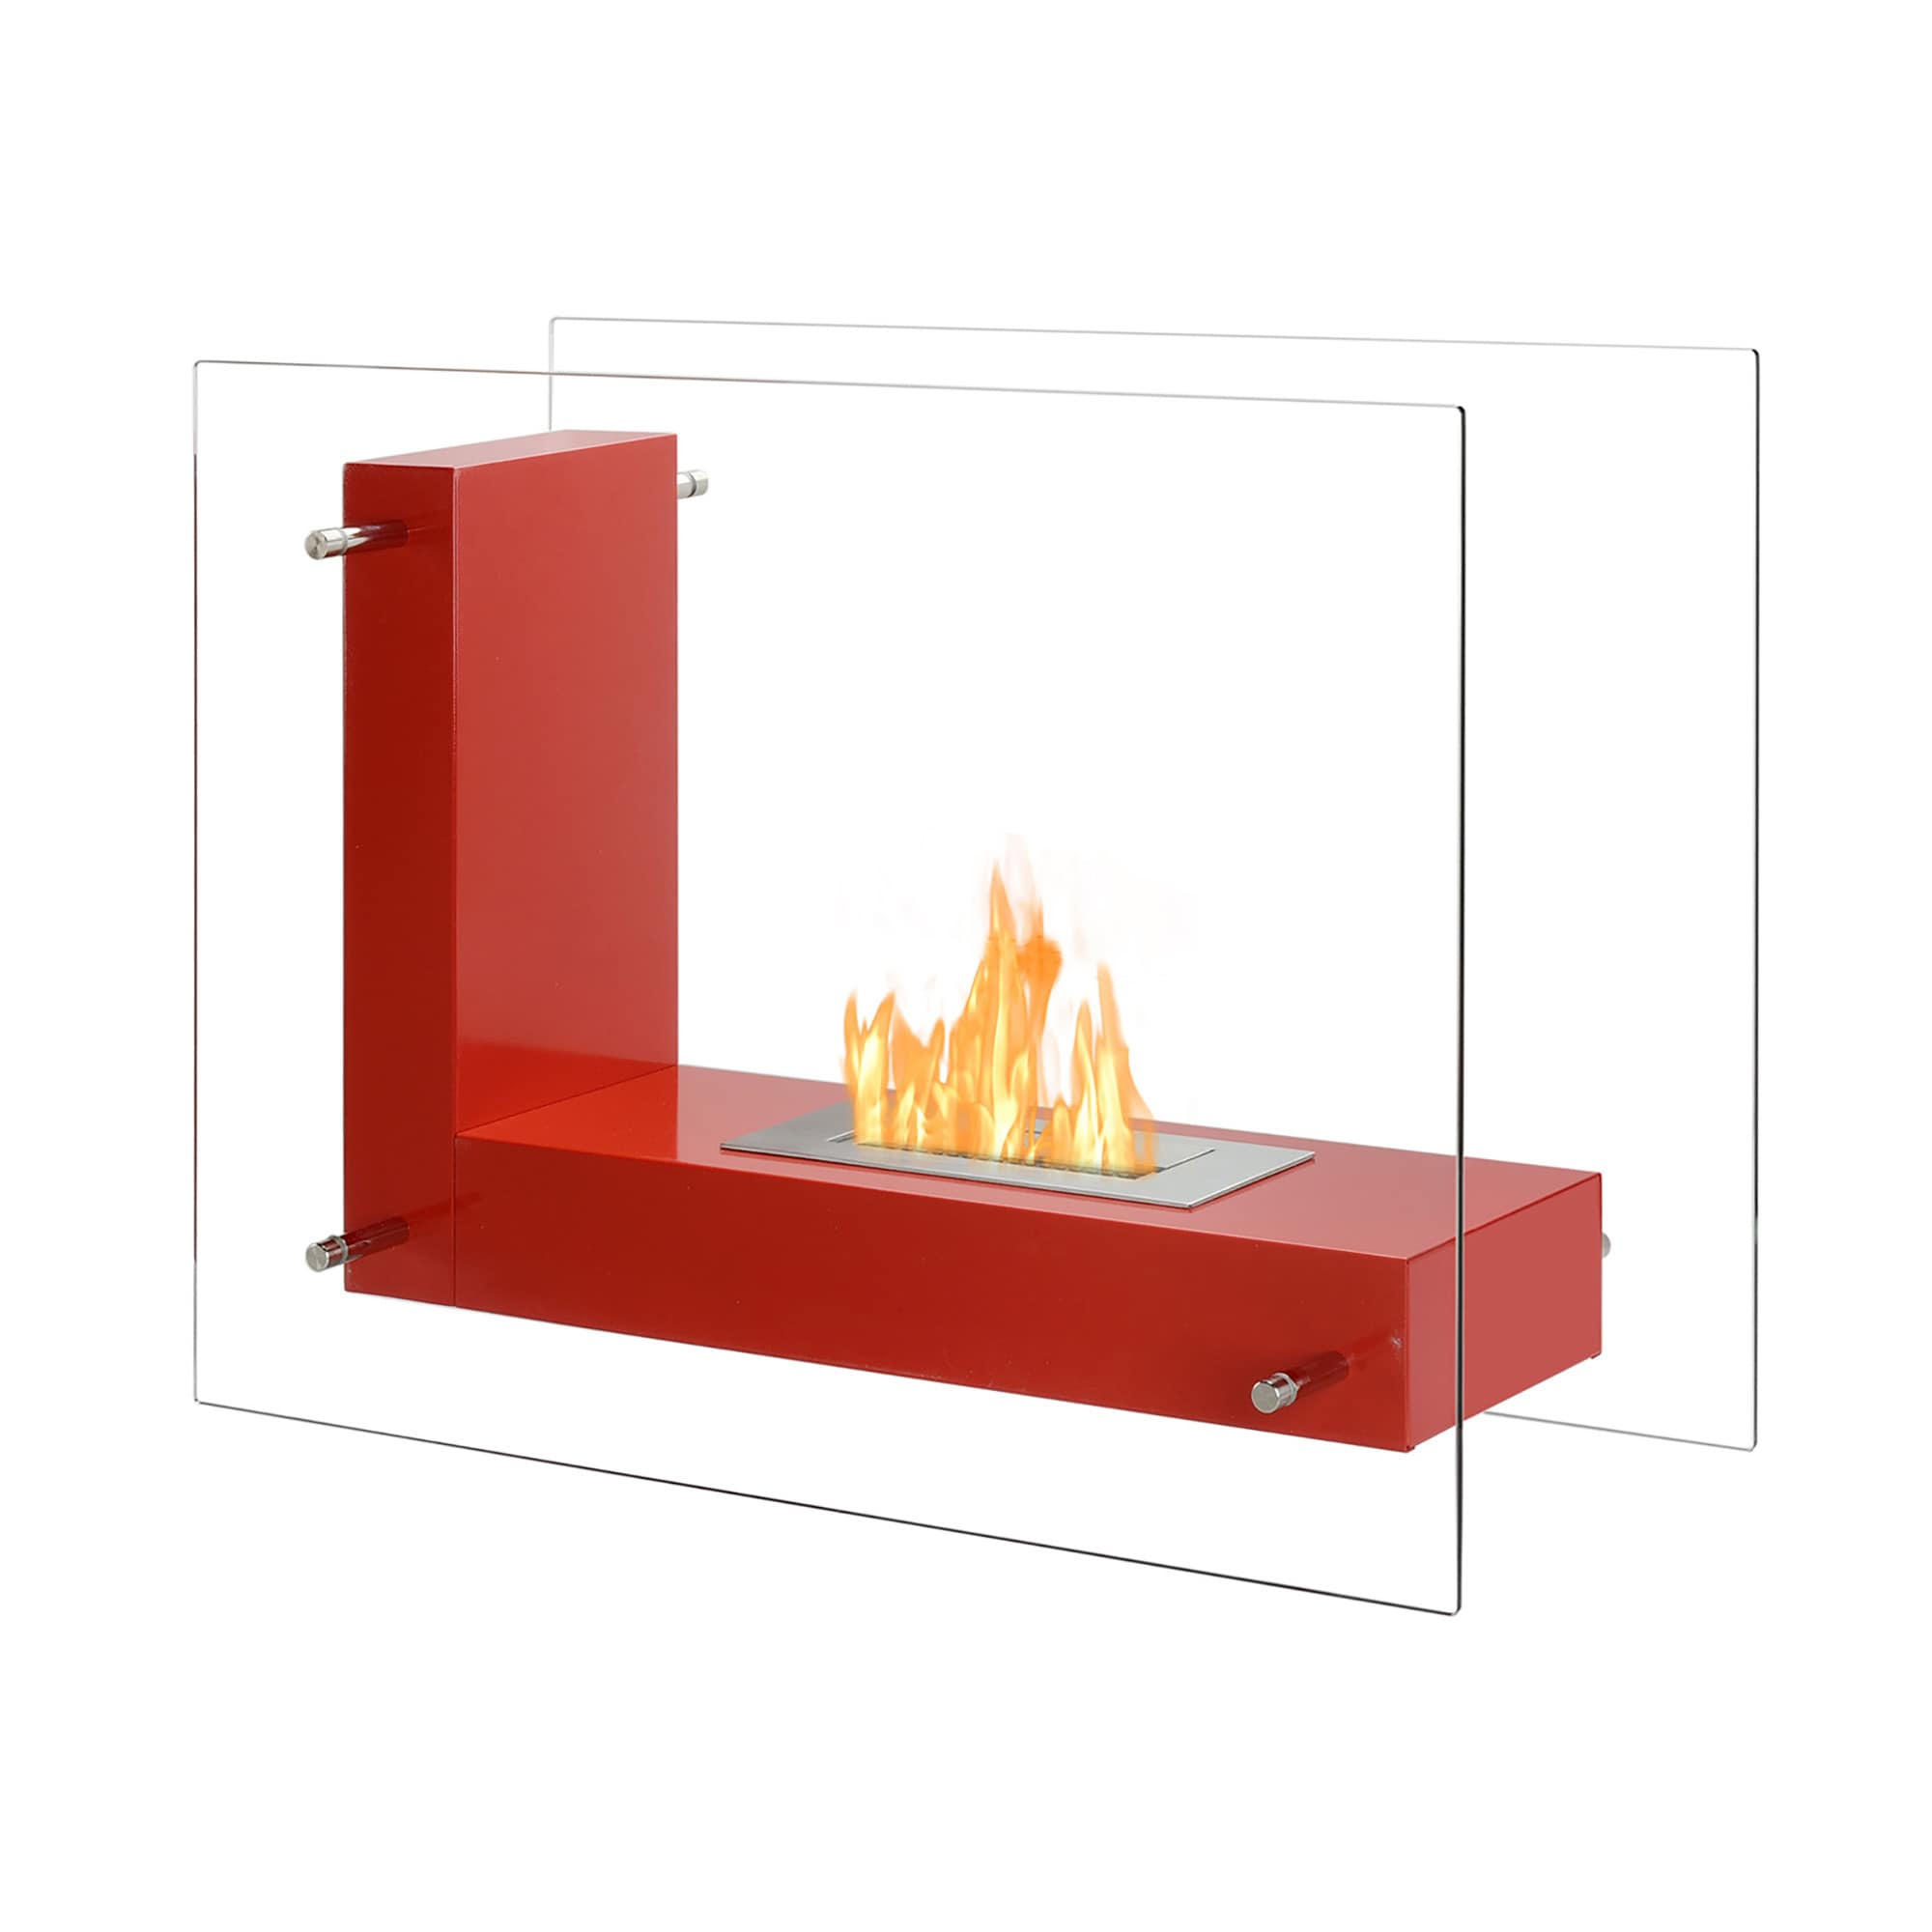 Cool Ignis Vitrum L Red Freestanding Ventless Ethanol Fireplace Interior Design Ideas Philsoteloinfo